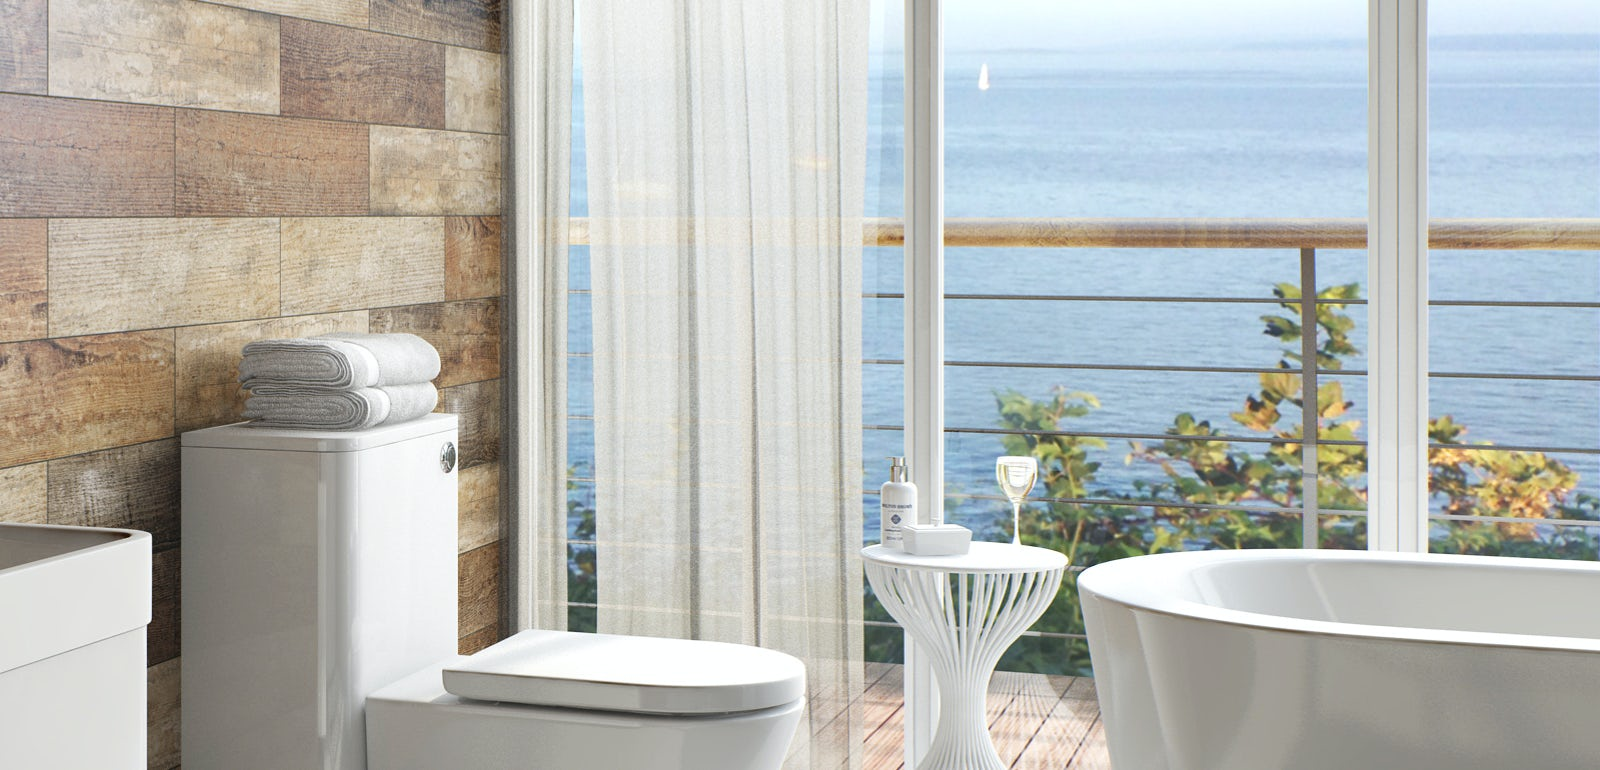 Is your bathroom summer ready?